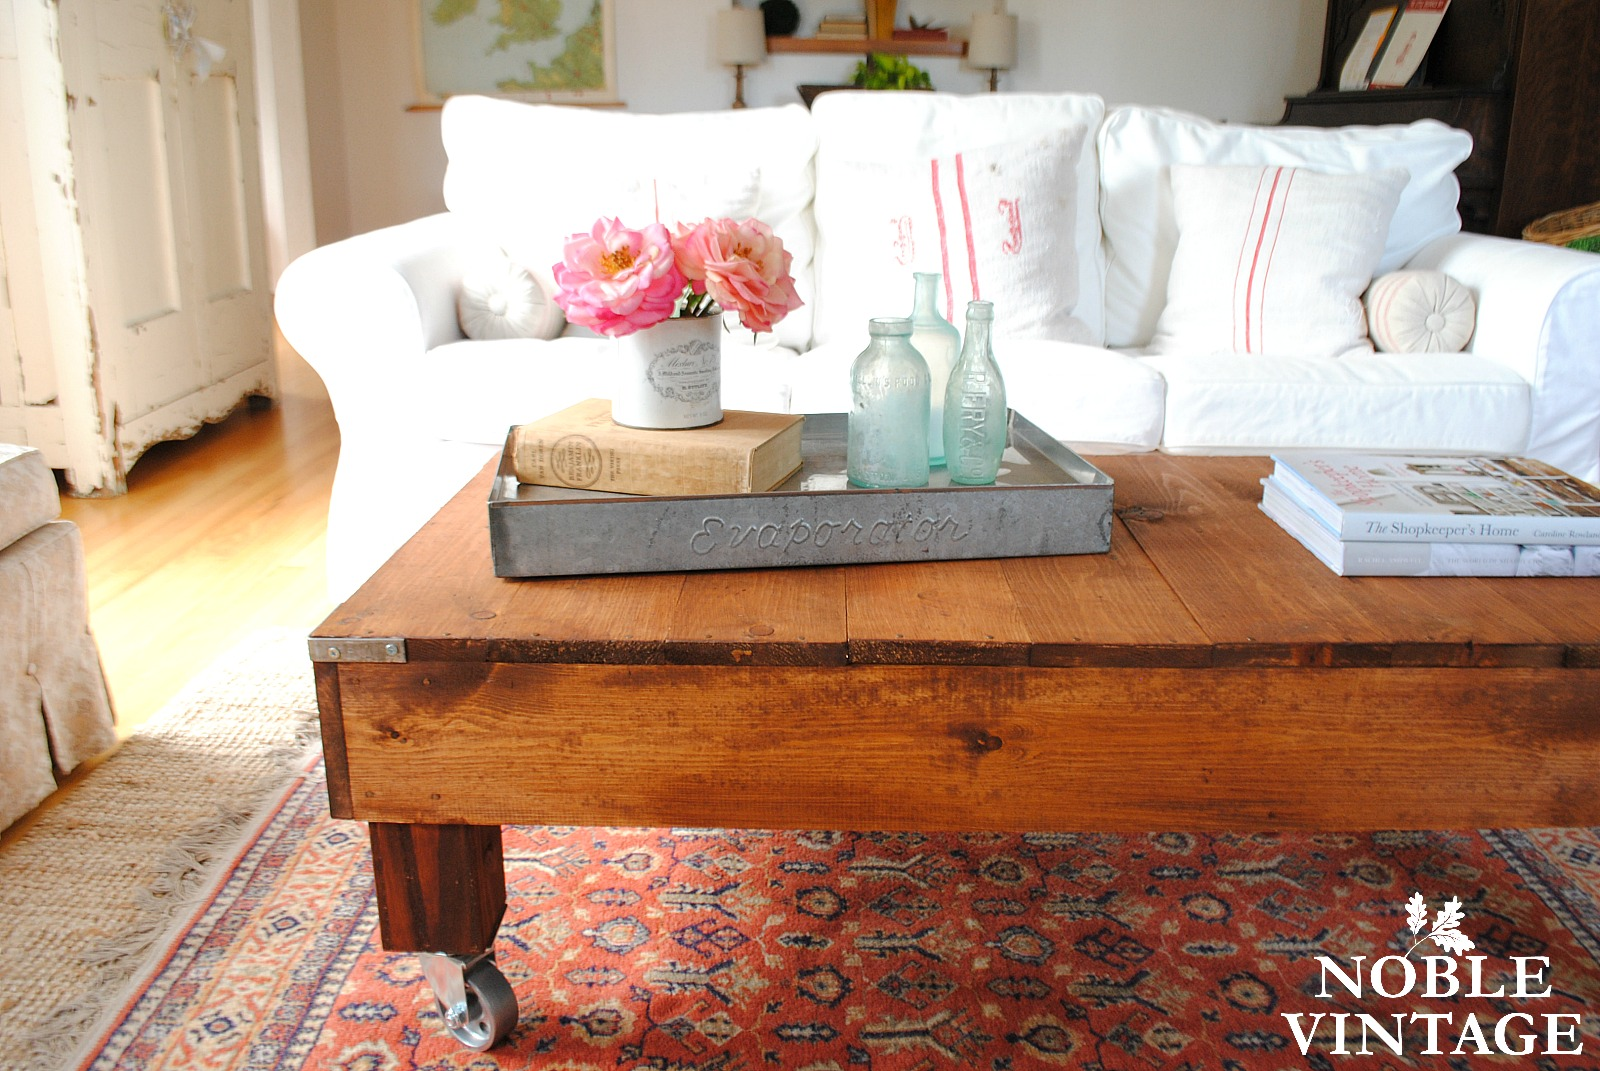 Anyway, The Table I Brought Home Was A Great Piece, And I Sold It Last Year  As A Rustic Industrial Coffee Table.